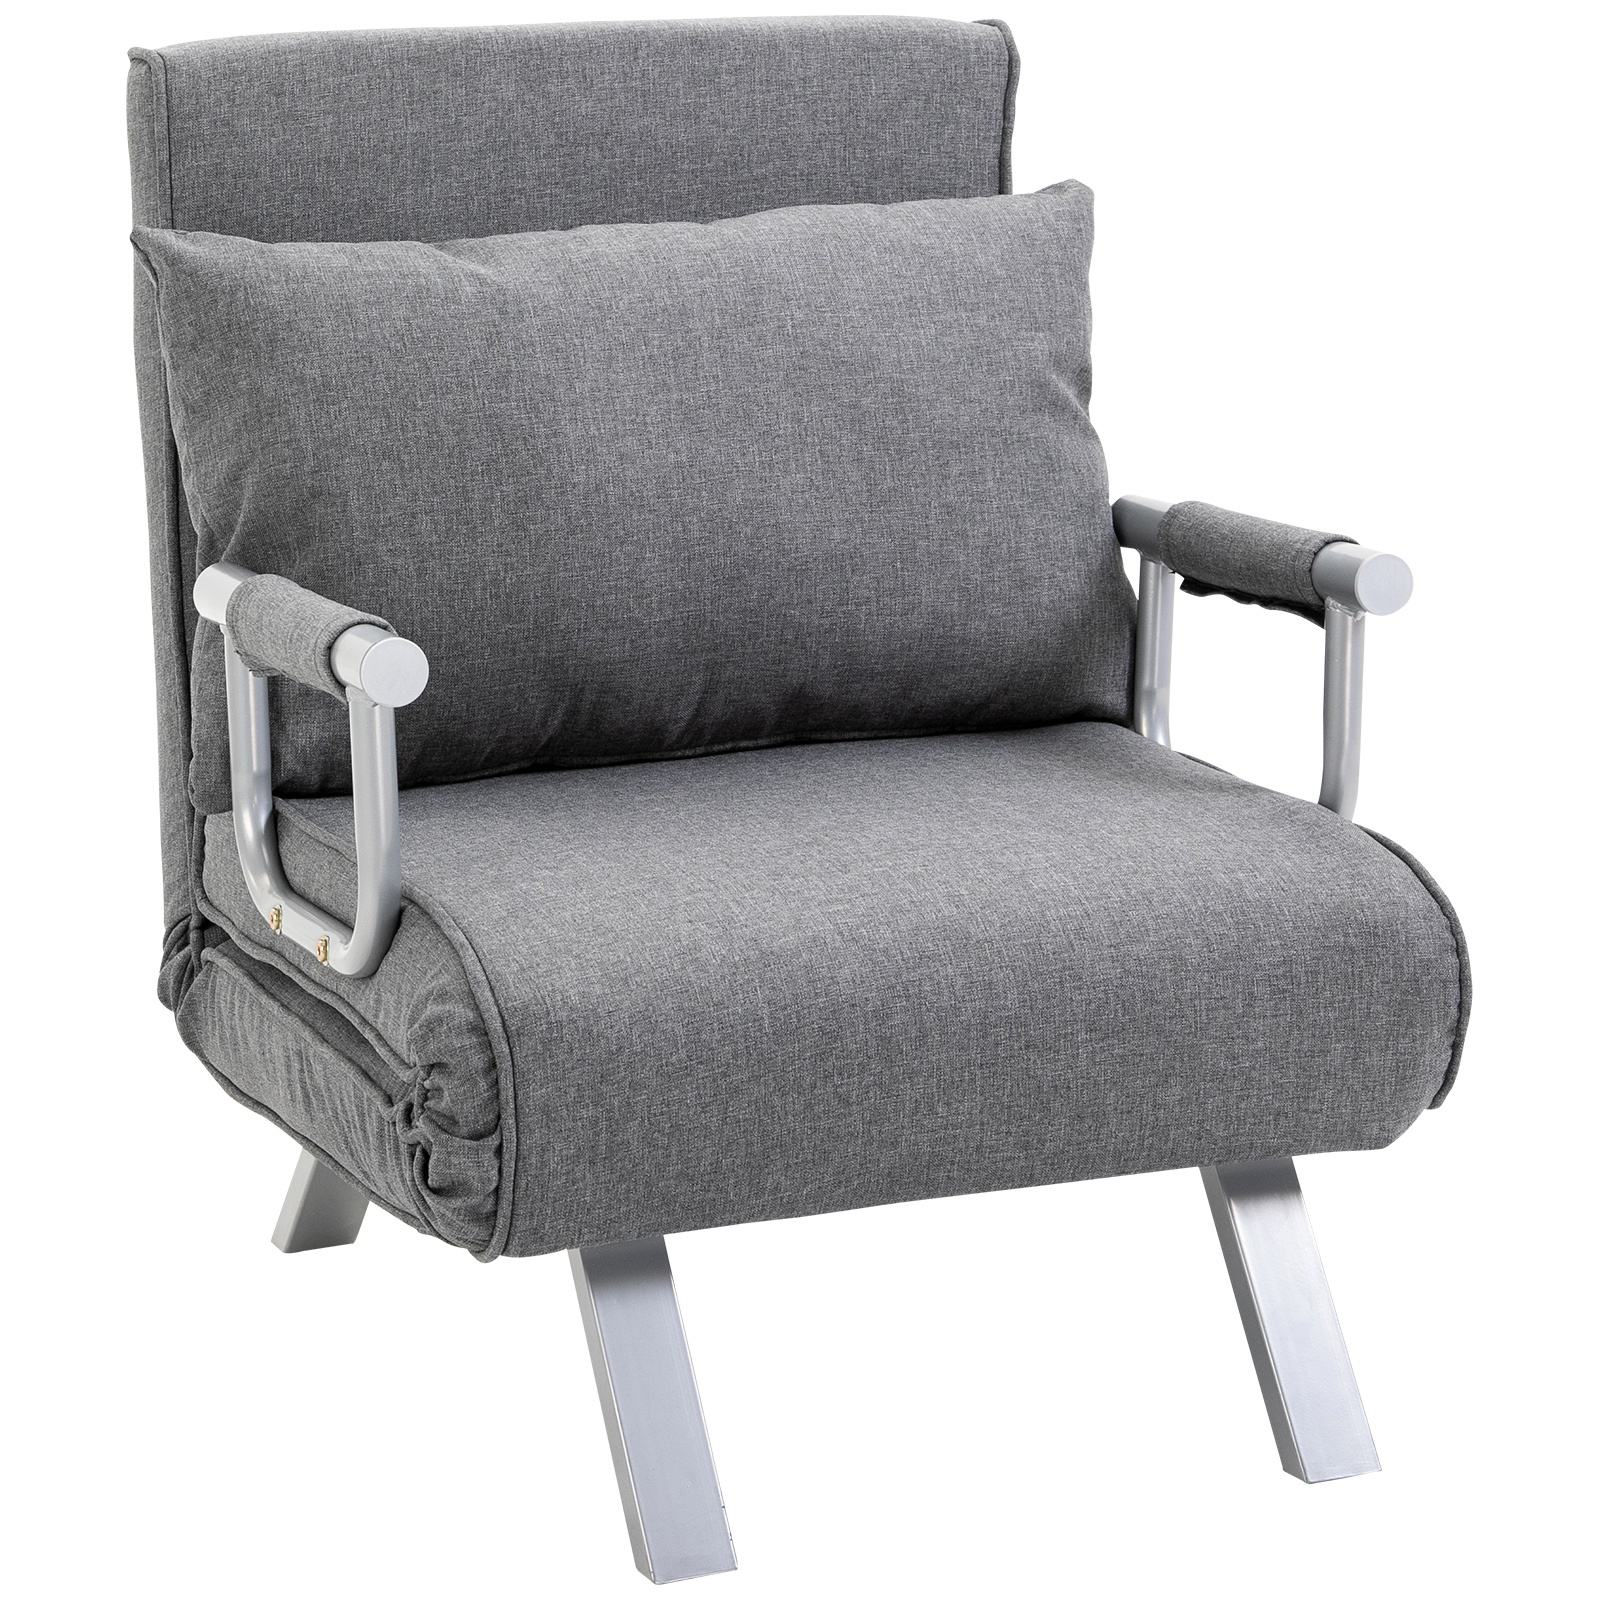 Fauteuil chauffeuse canapé-lit convertible inclinable lin gris clair